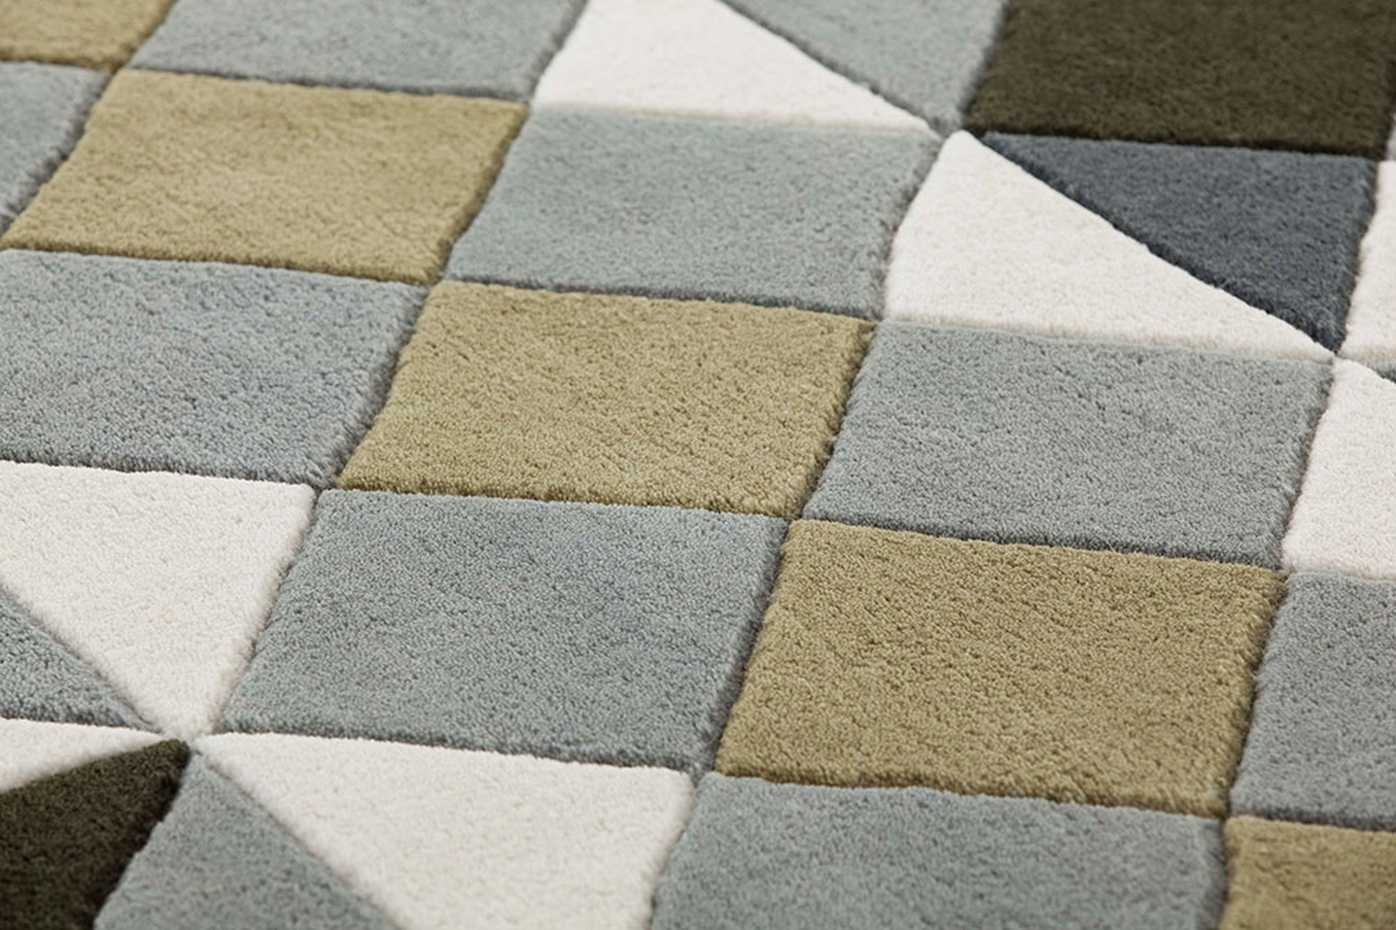 Mosaiek - Hand Tuffted by Gan Rugs product image 2